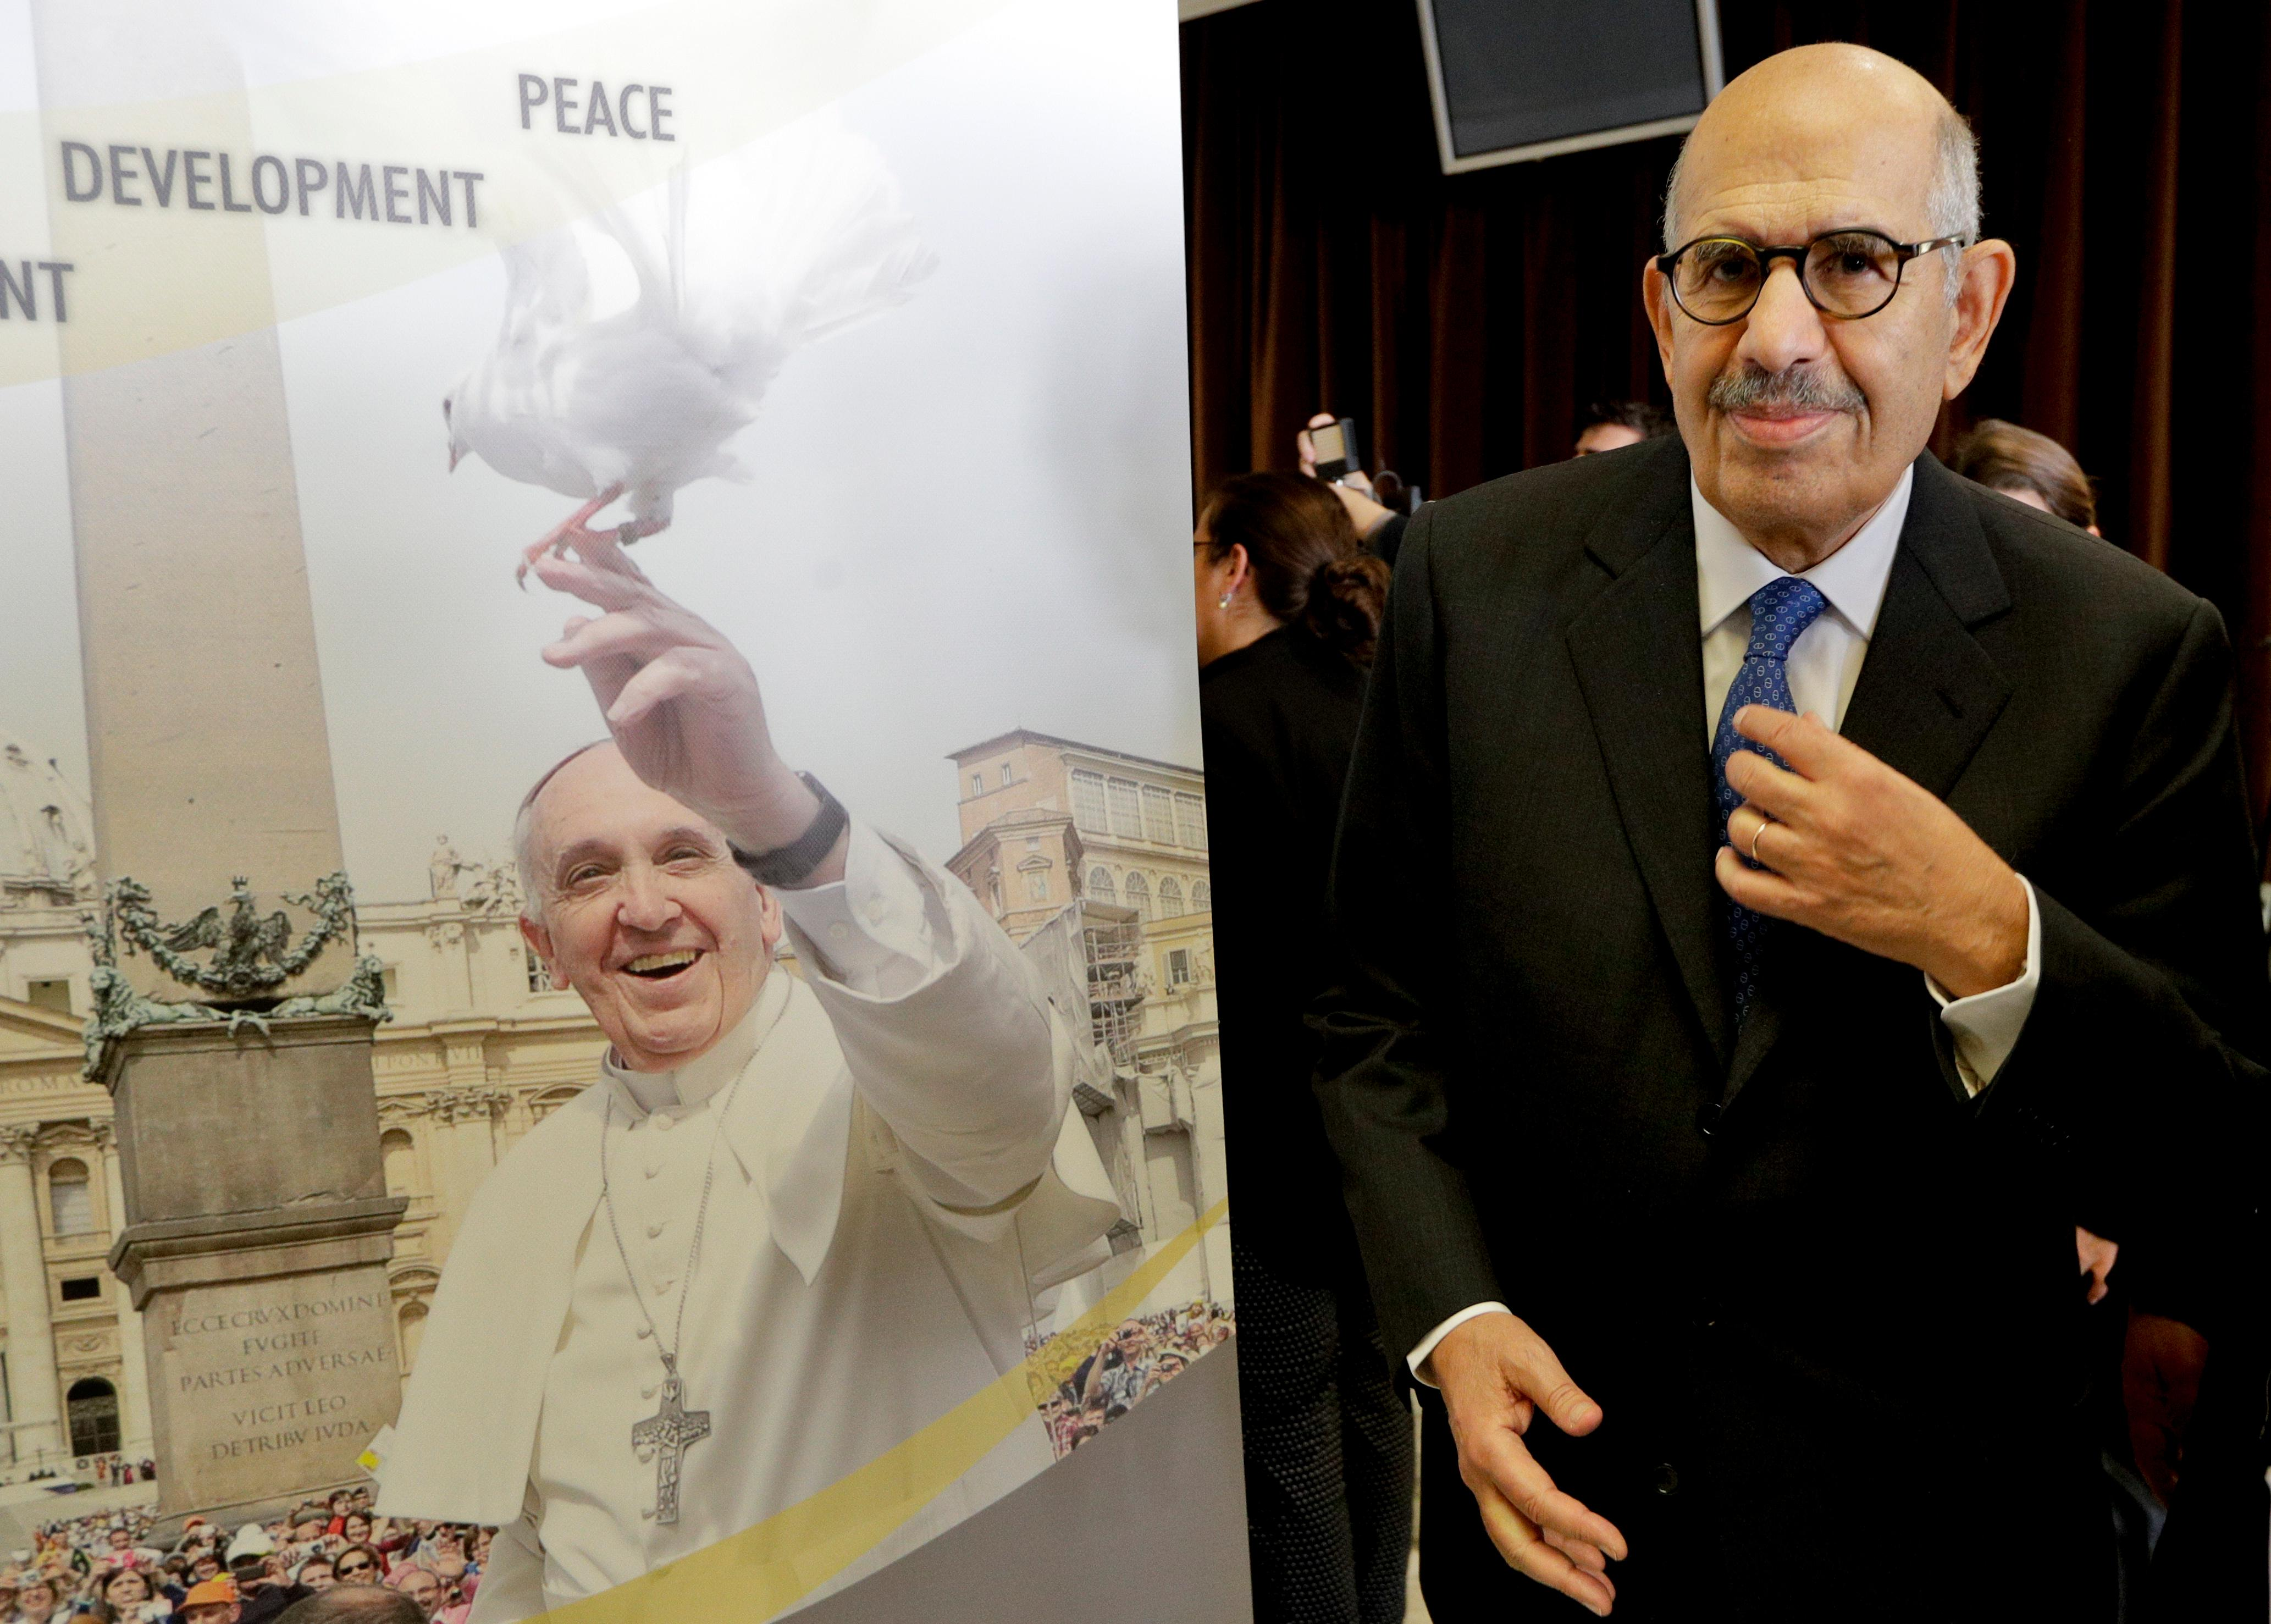 Director General Emeritus of the Intenational atomic Energy Agency and Nobel Peace laureate Mohamed ElBaradei poses for a picture next to a poster of Pope Francis as he arrives for interviews during a break in a conference on nuclear disarmament, at the Vatican, Friday, Nov. 10, 2017. The Vatican hosted Nobel laureates, U.N. and NATO officials and a handful of nuclear powers at a conference aimed at galvanizing support for a global shift from the Cold War era policy of nuclear deterrence to one of total nuclear disarmament.(AP Photo/Andrew Medichini3